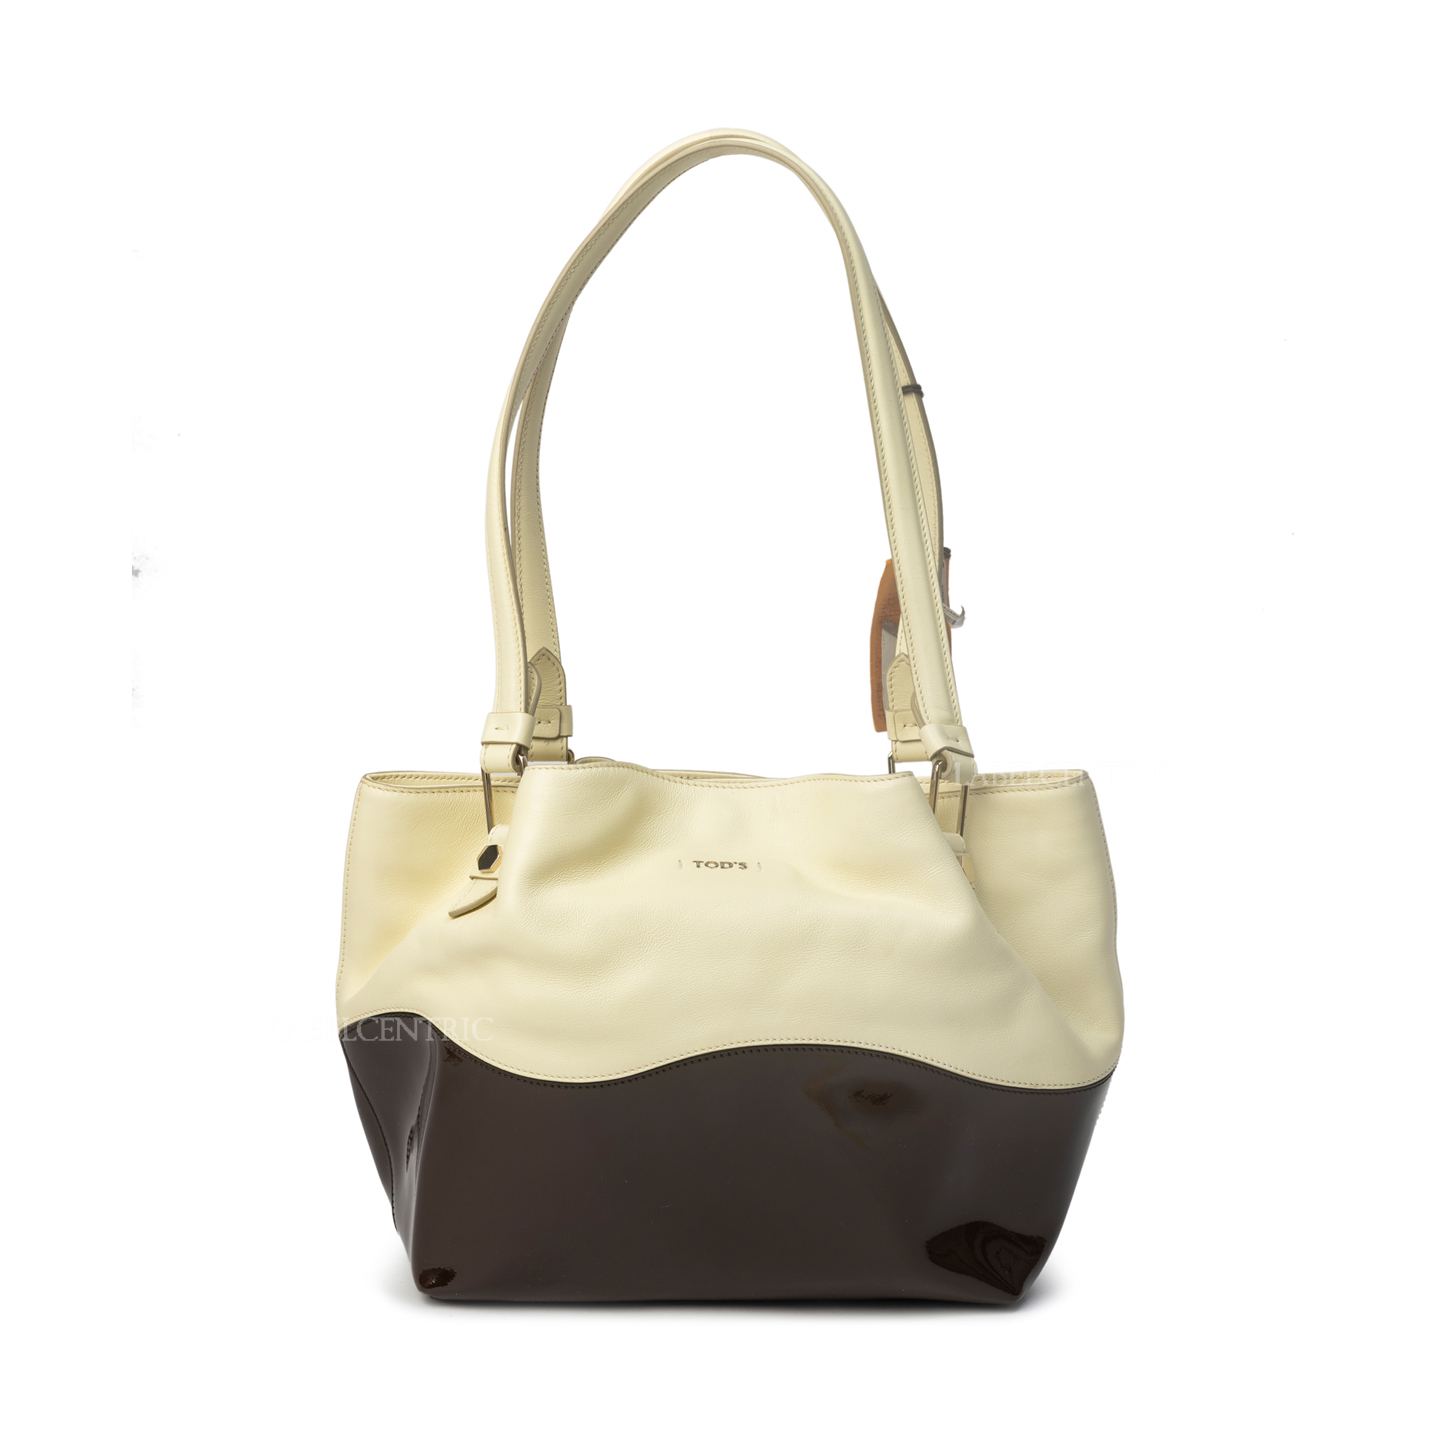 Tod's White:Burgundy Leather and Patent Leather Medium Flower Tote